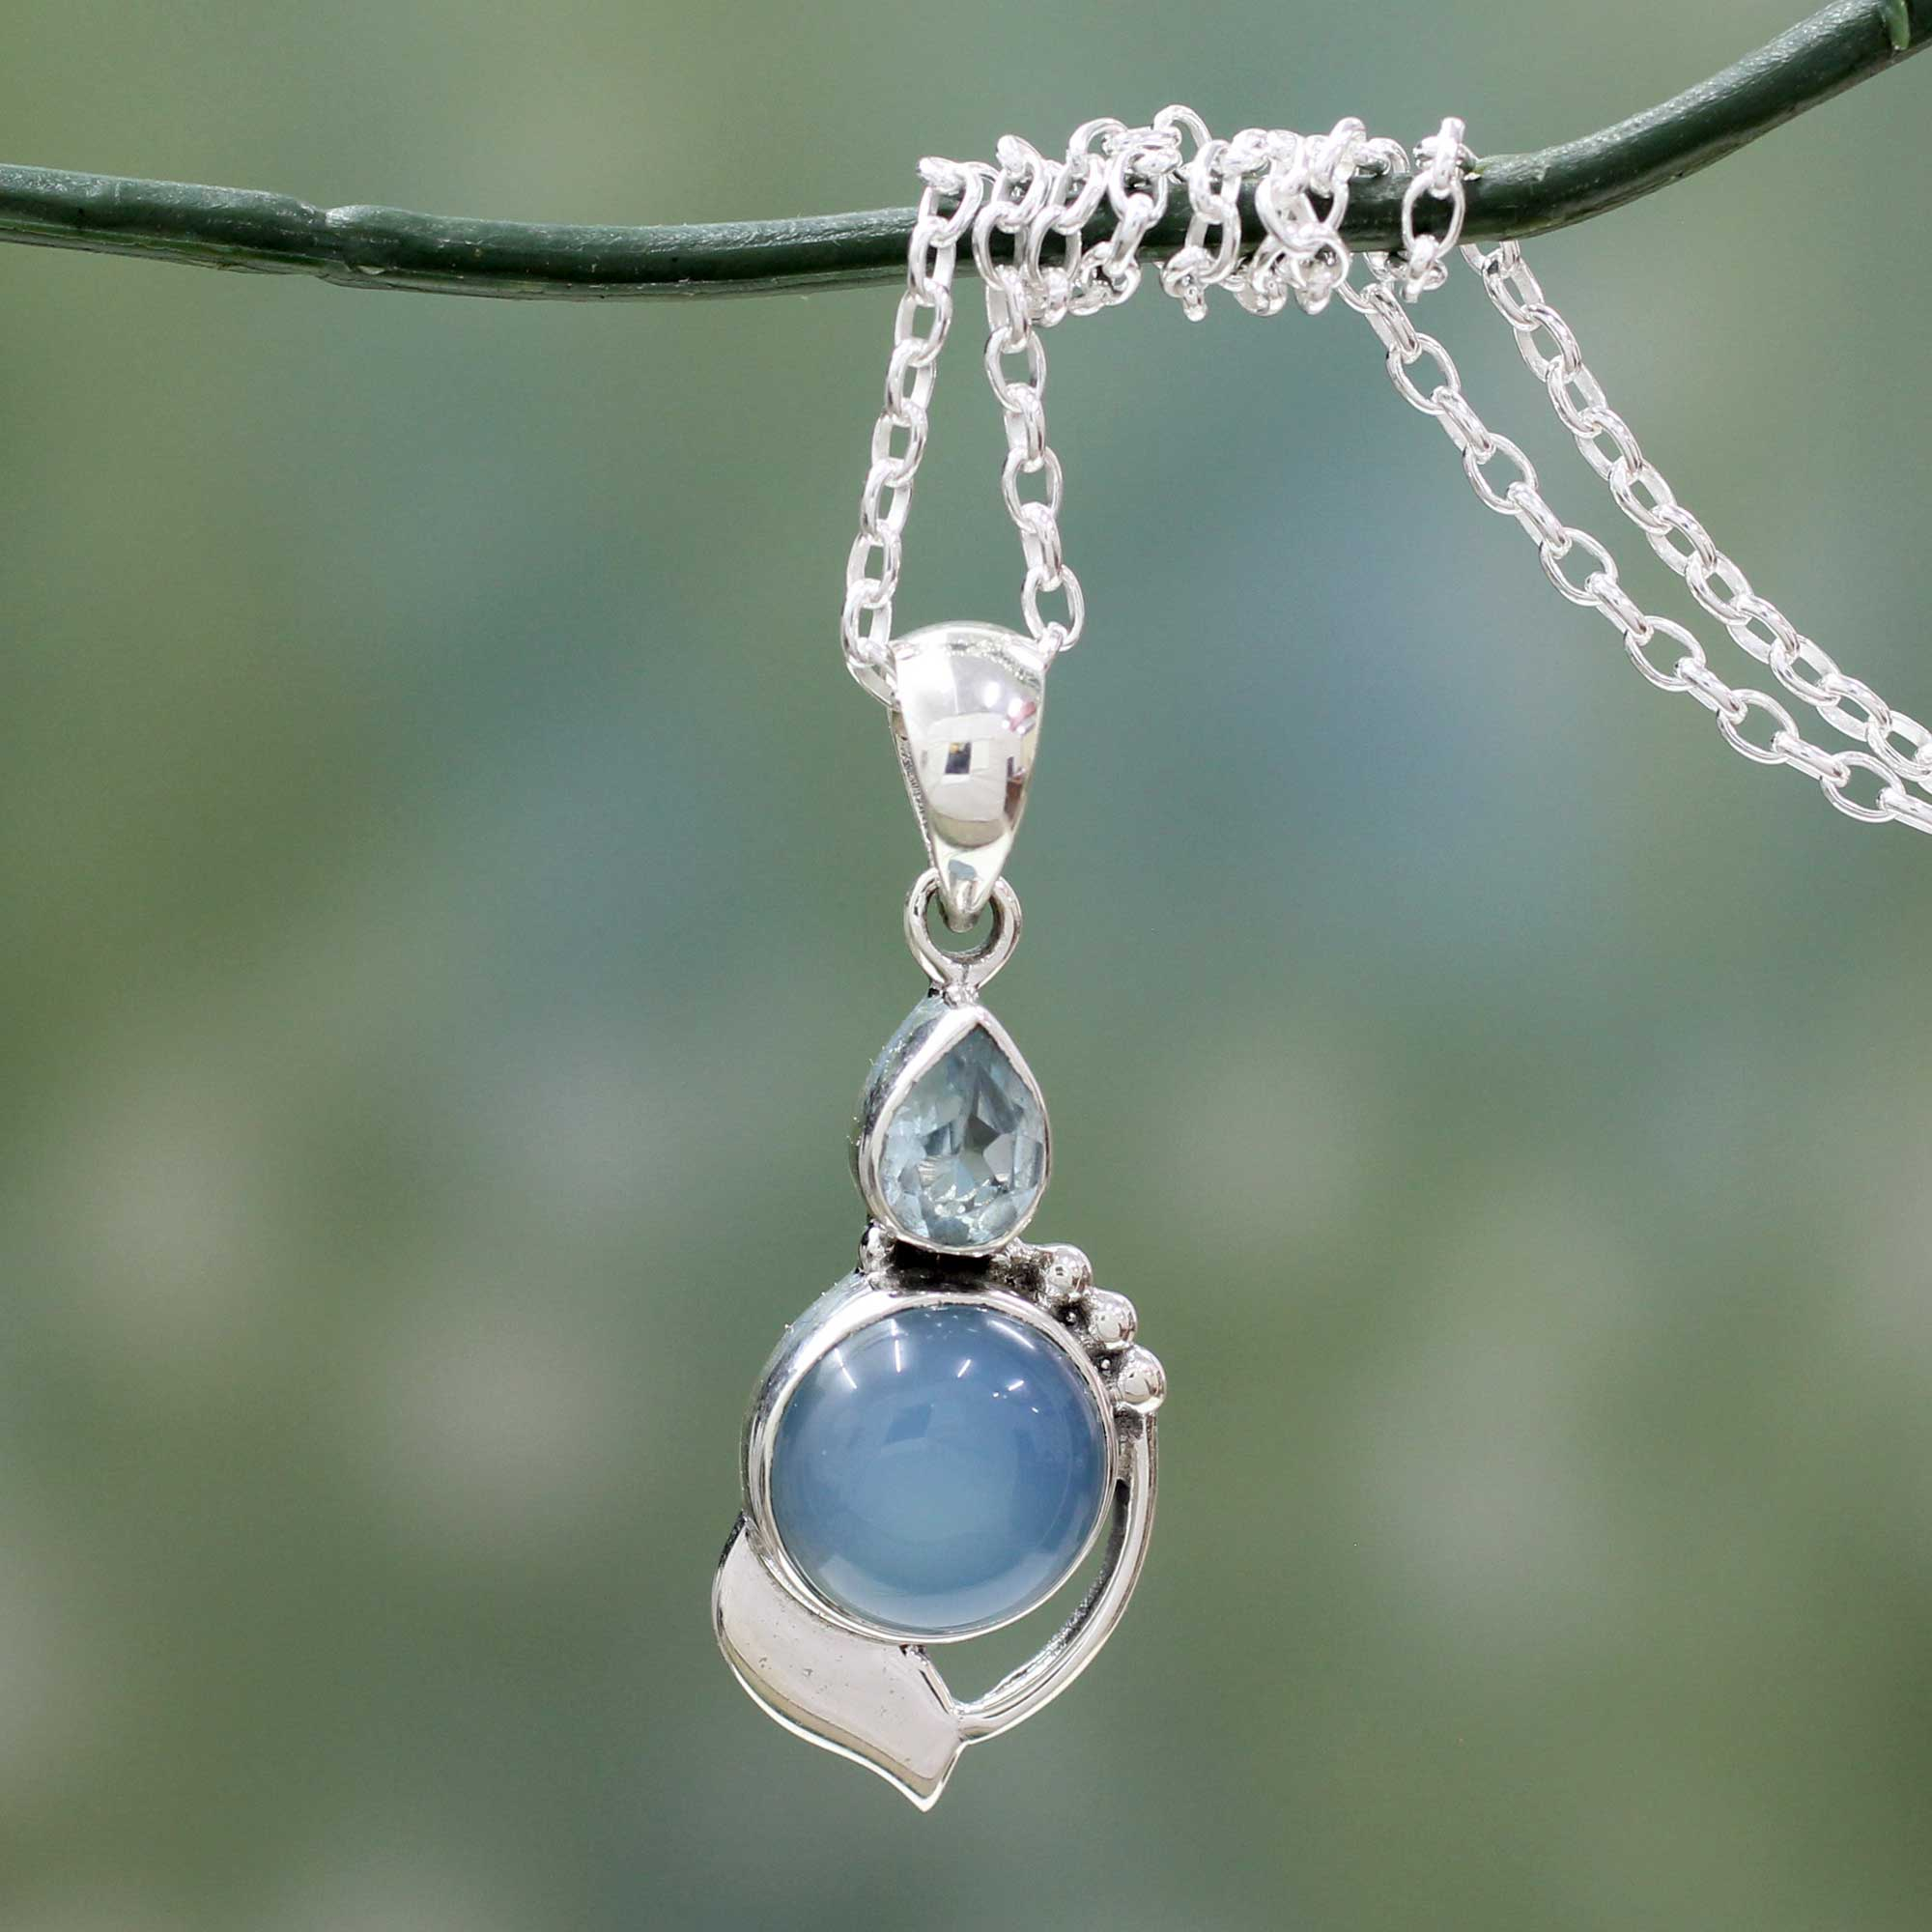 necklace aqua ed levin silver rockabye chalcedony in sterling pendant